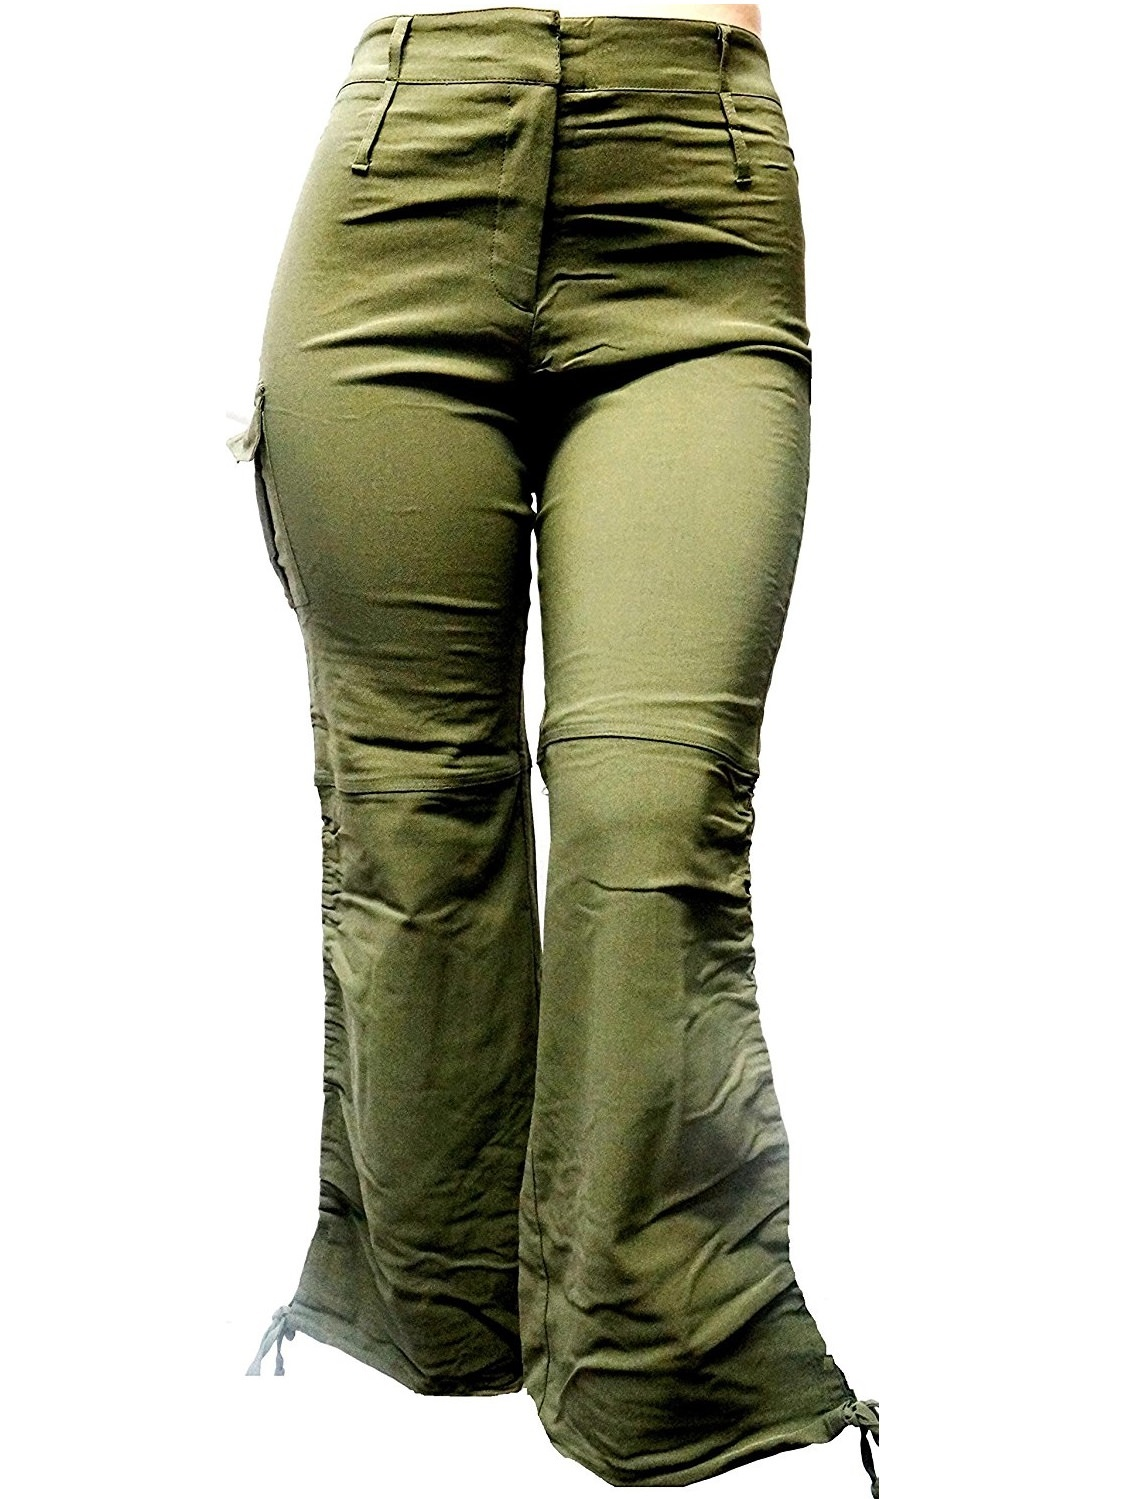 JEANS FOR LOVE Jack David Women's Plus Size Drawstring Relaxed Fit High-Waist Full Length Cargo Pants